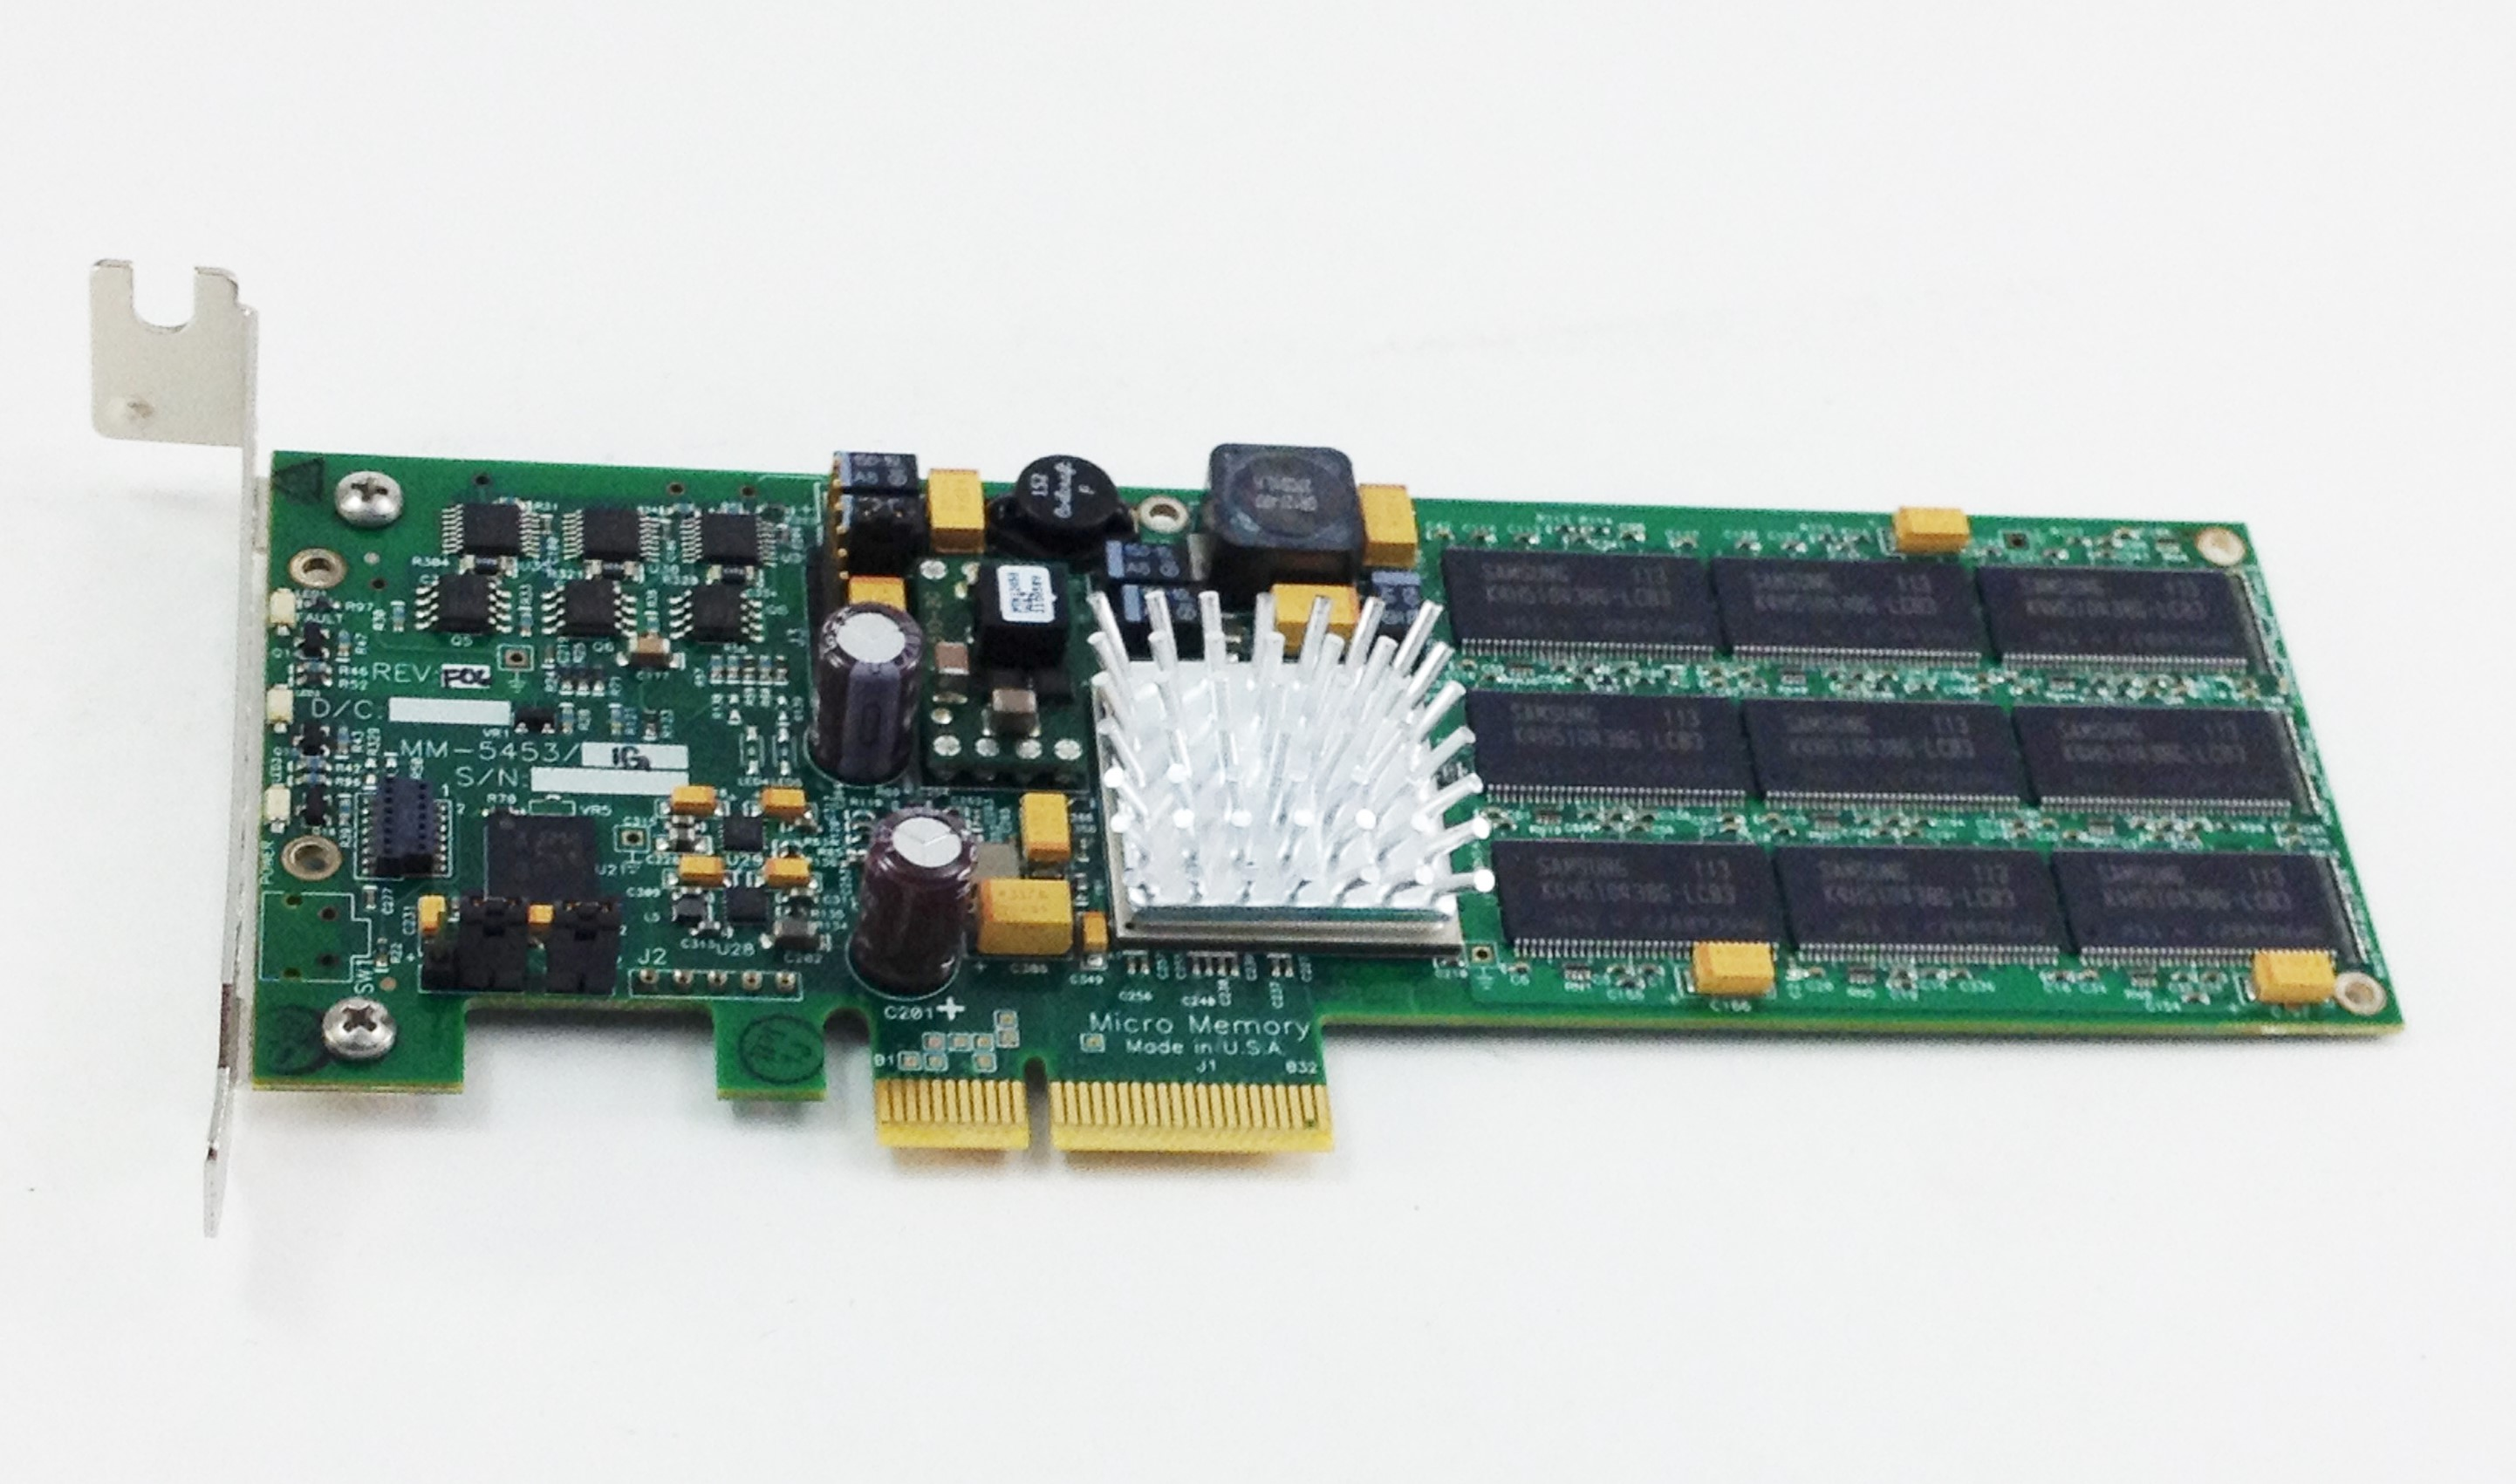 MM  5453 Curtiss Wright 1GB NvRAM PCI-E Mezzanine Card Without Battery (MM  5453)